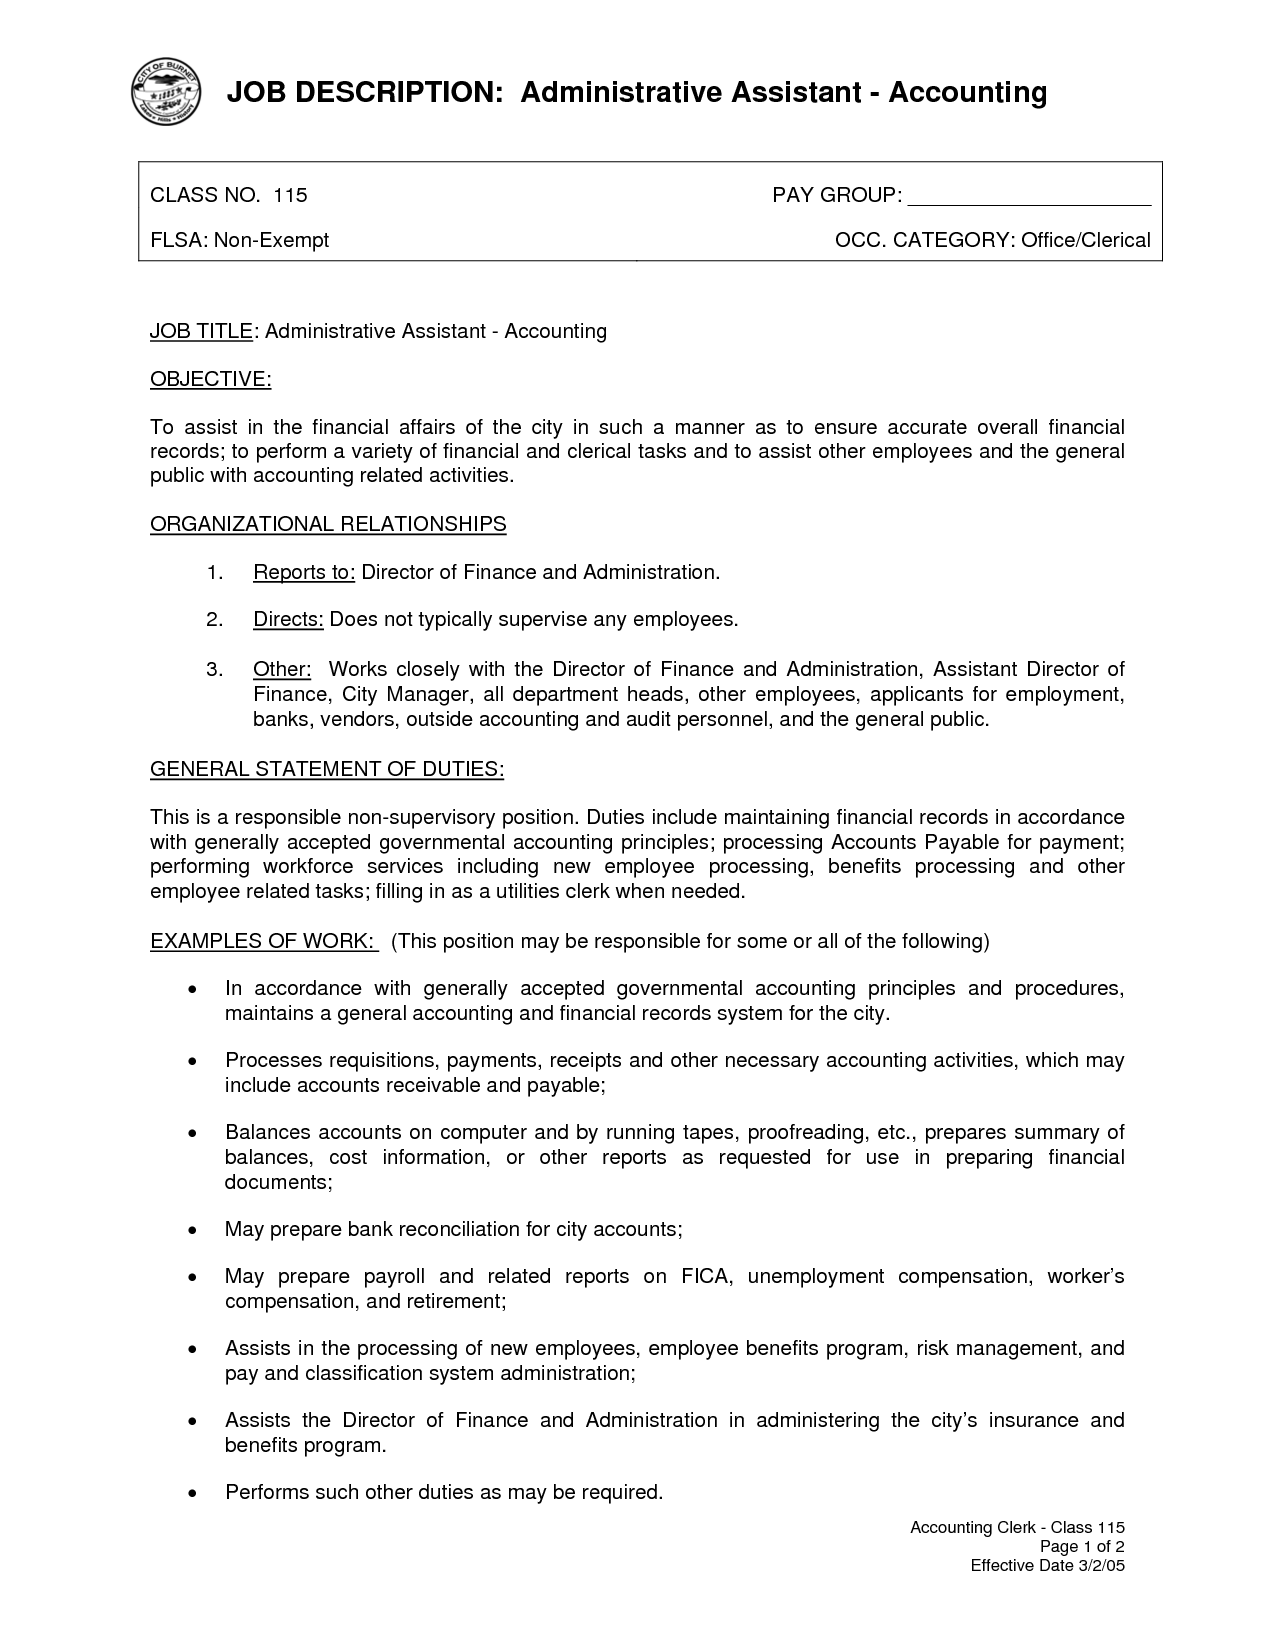 Administrative intern resume